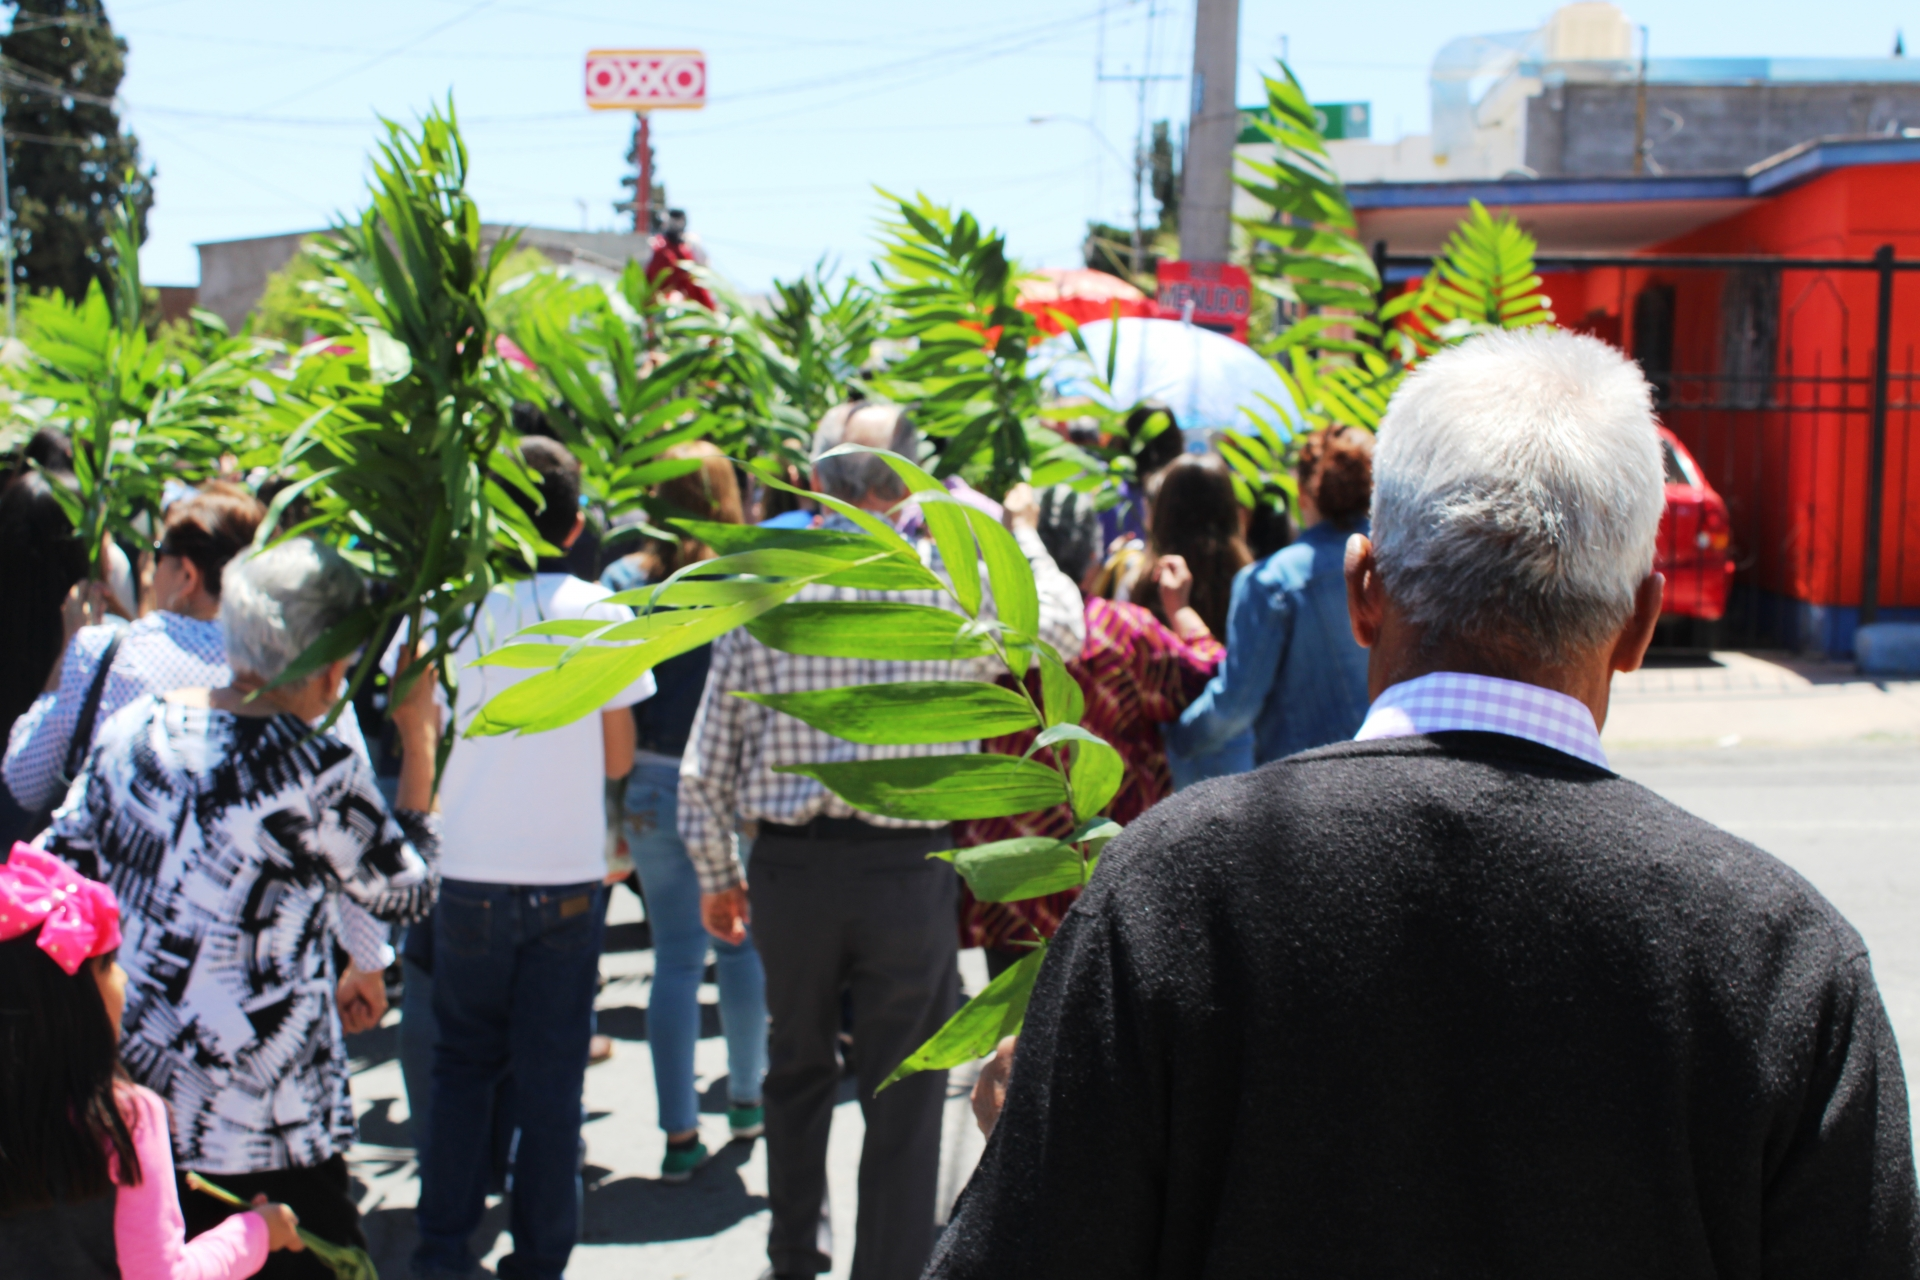 sunday of spring, palms, procession, people